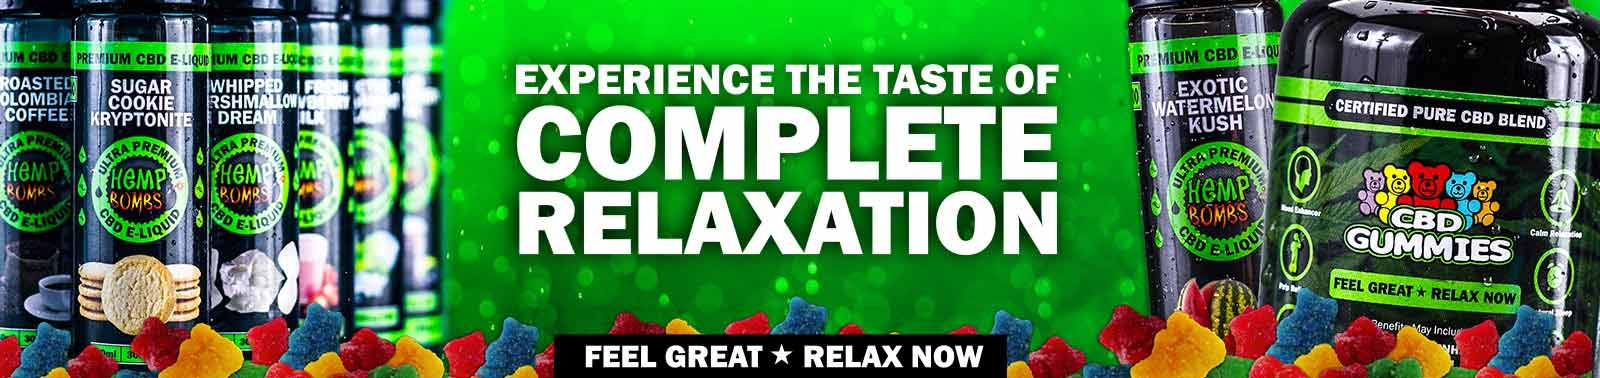 experience complete relaxation with hemp bombs cbd e-liquids and gummies